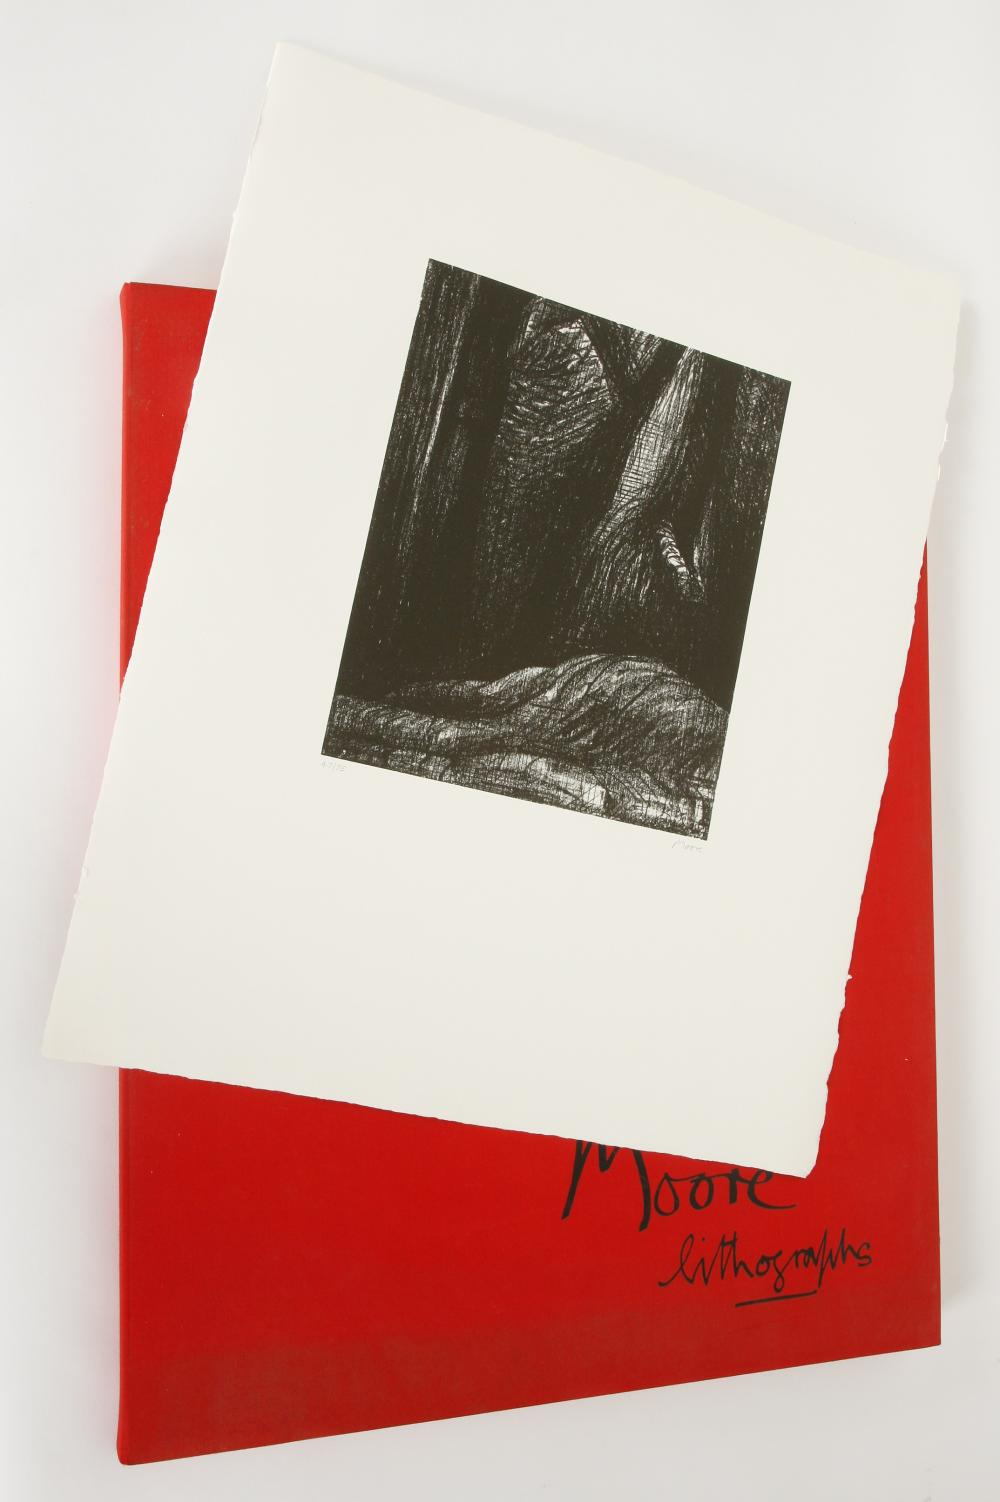 Henry Moore (United Kingdom 1898-1986) Auden Poems, Moore Lithographs (portfolio of 18 lithographs), 1973